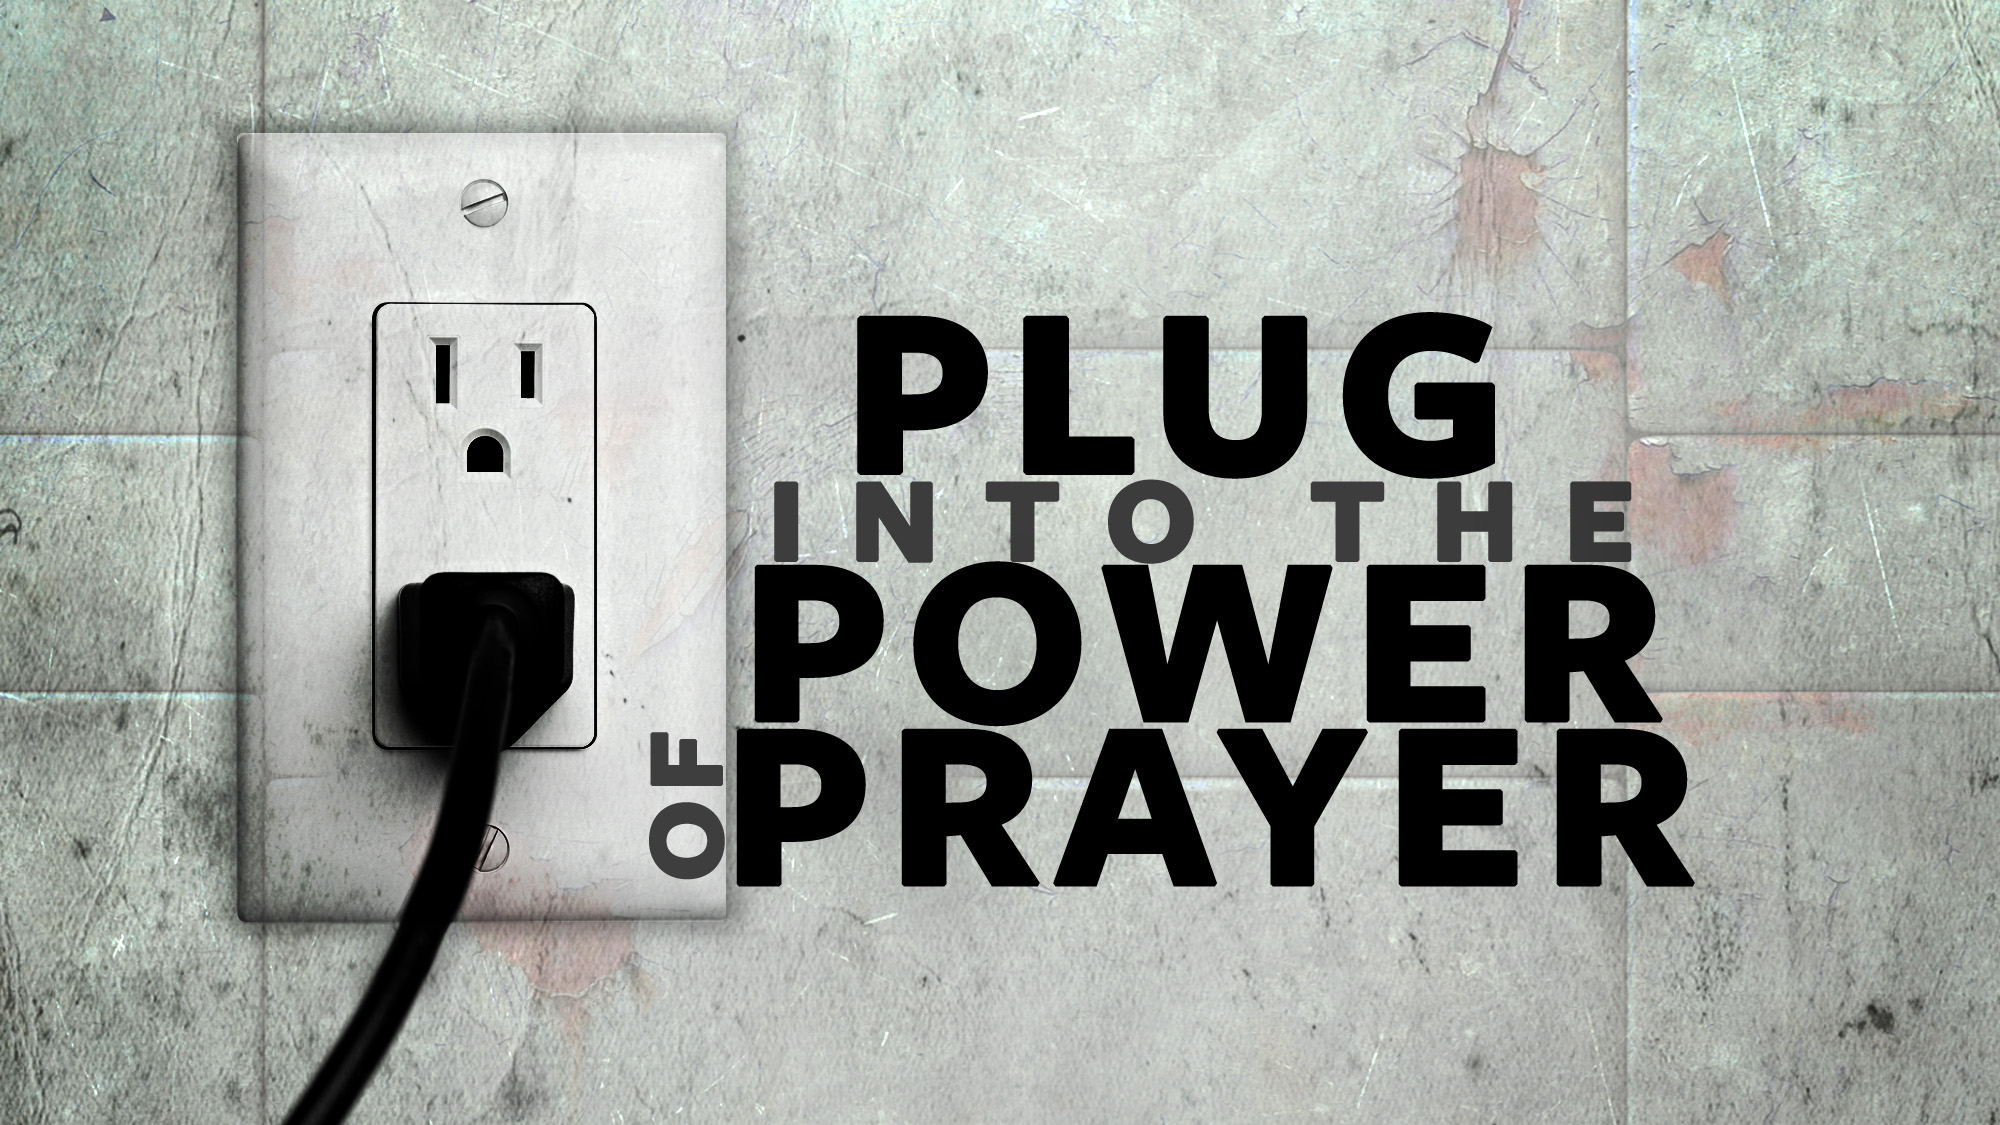 The power of prayer is waiting for you to ask and receive.